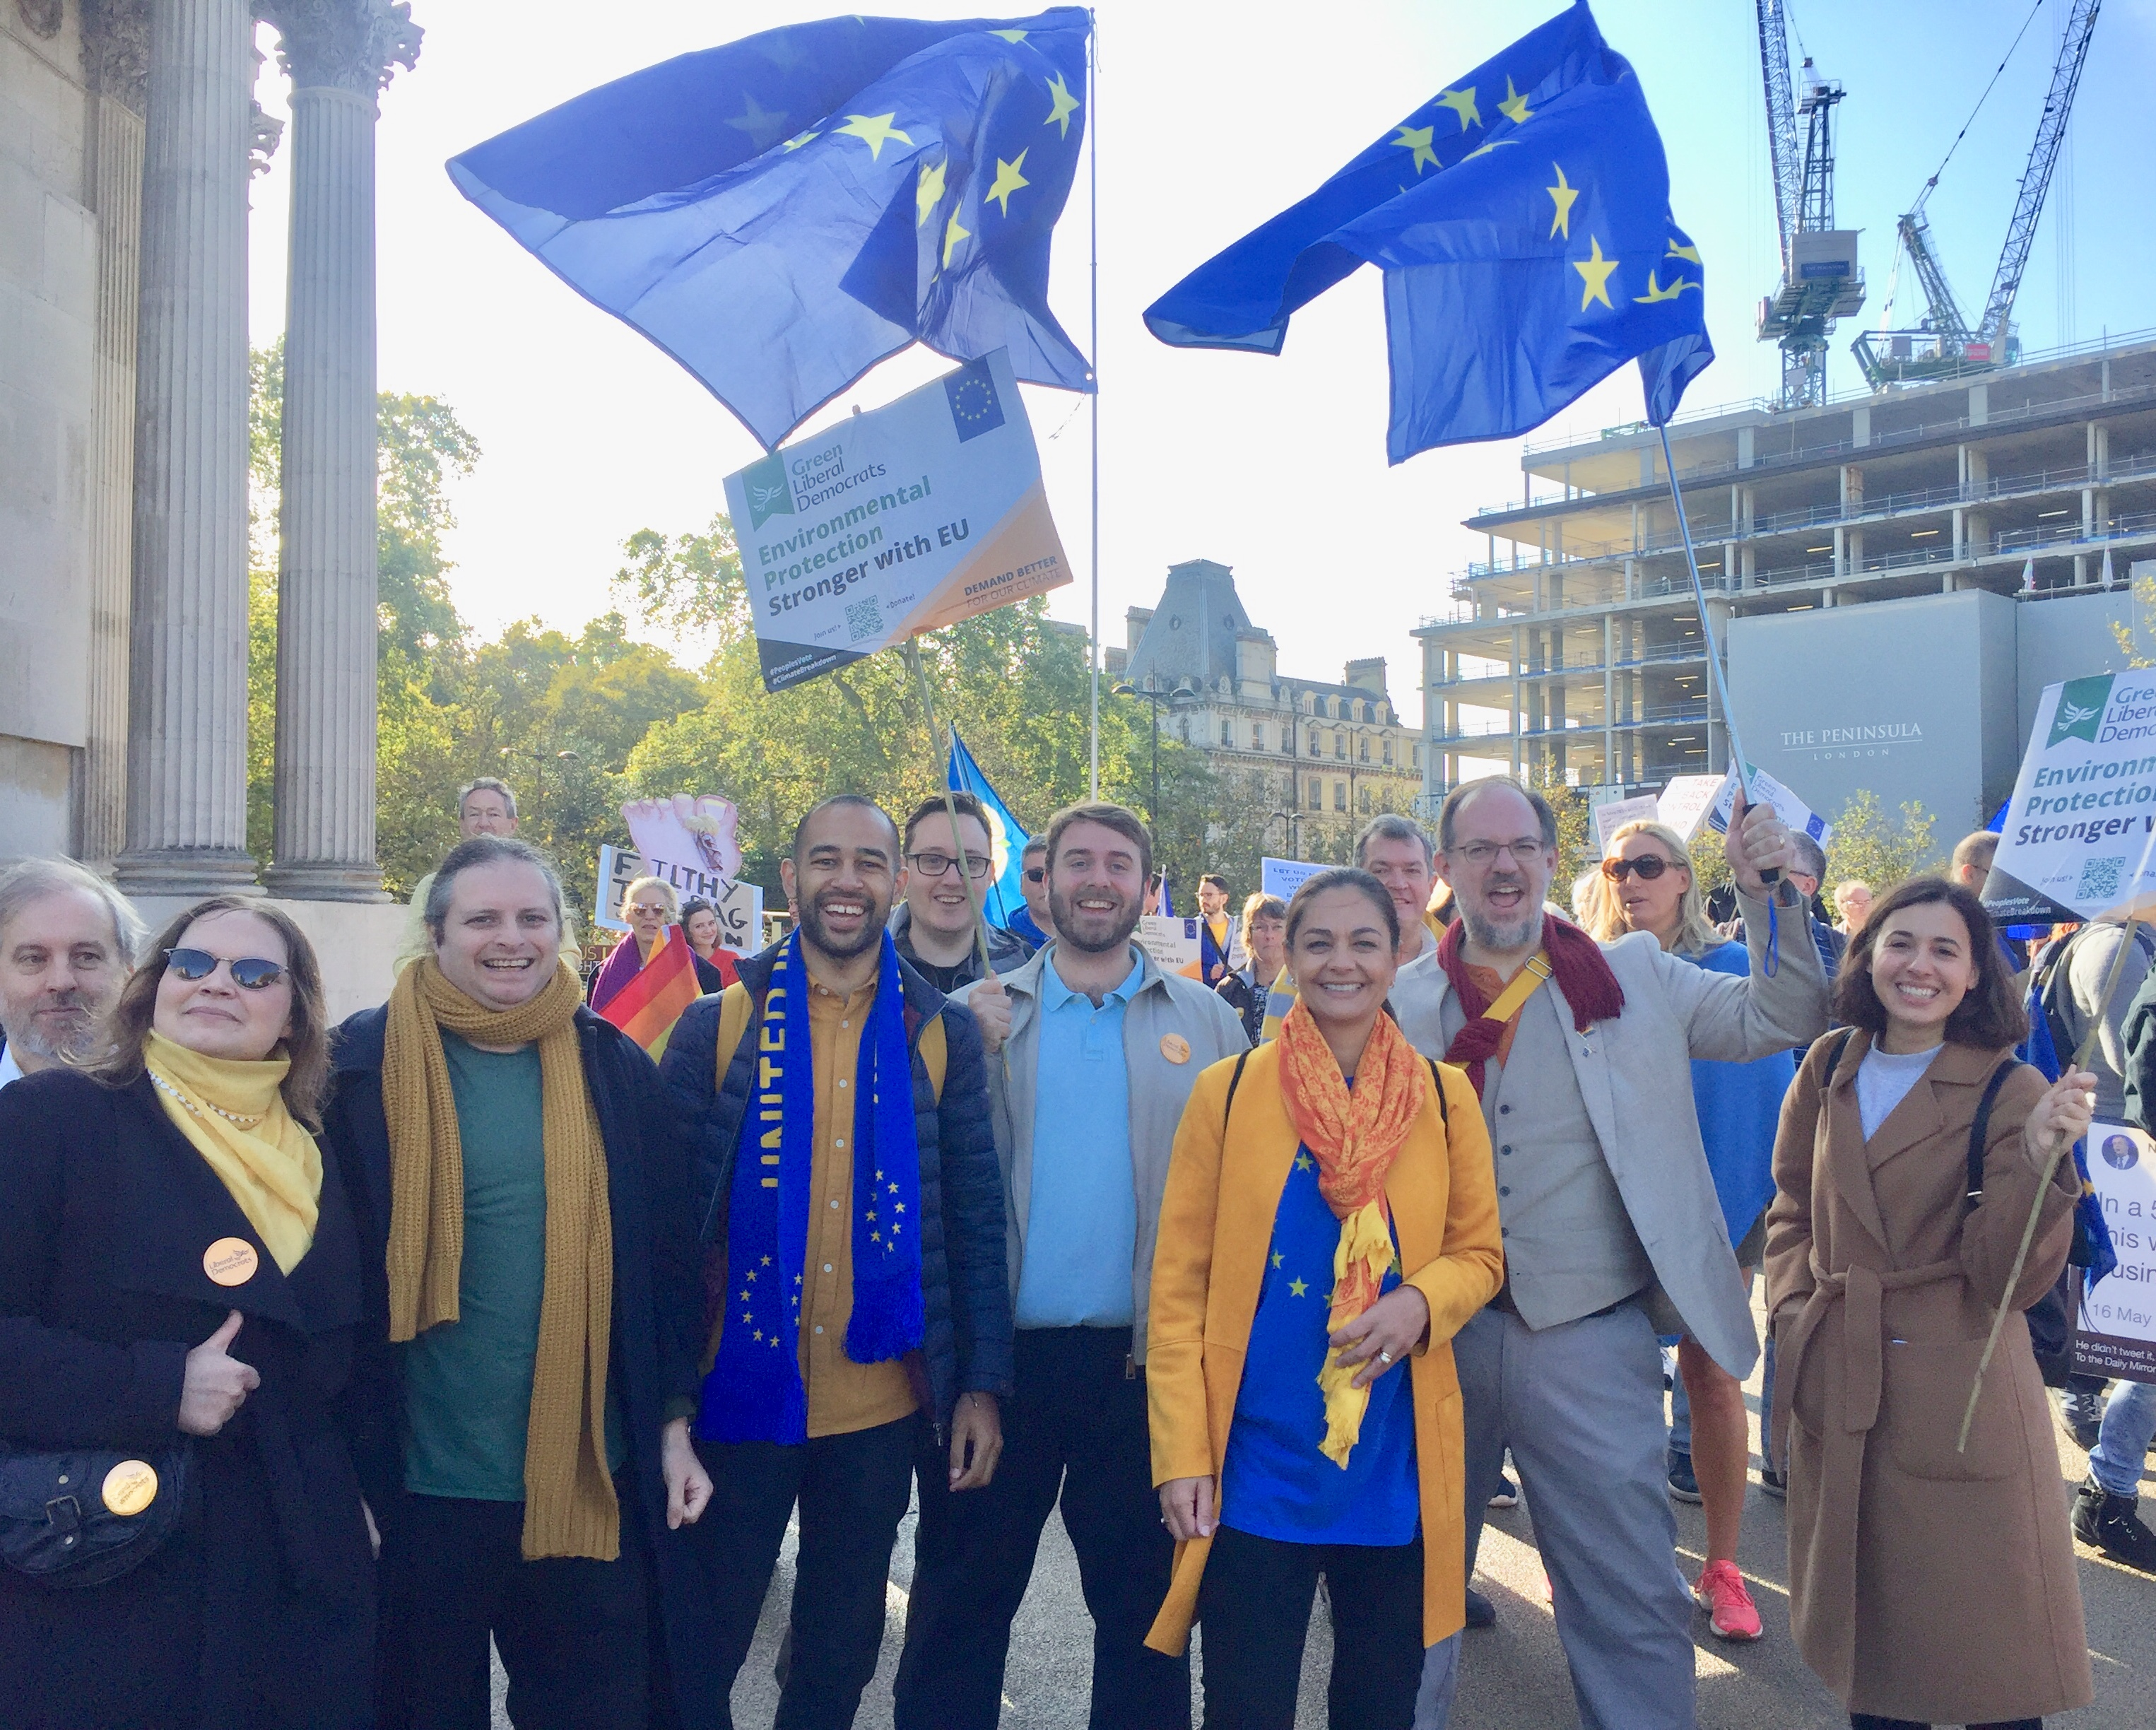 Lib Dems March for a People's Vote to Stop Brexit